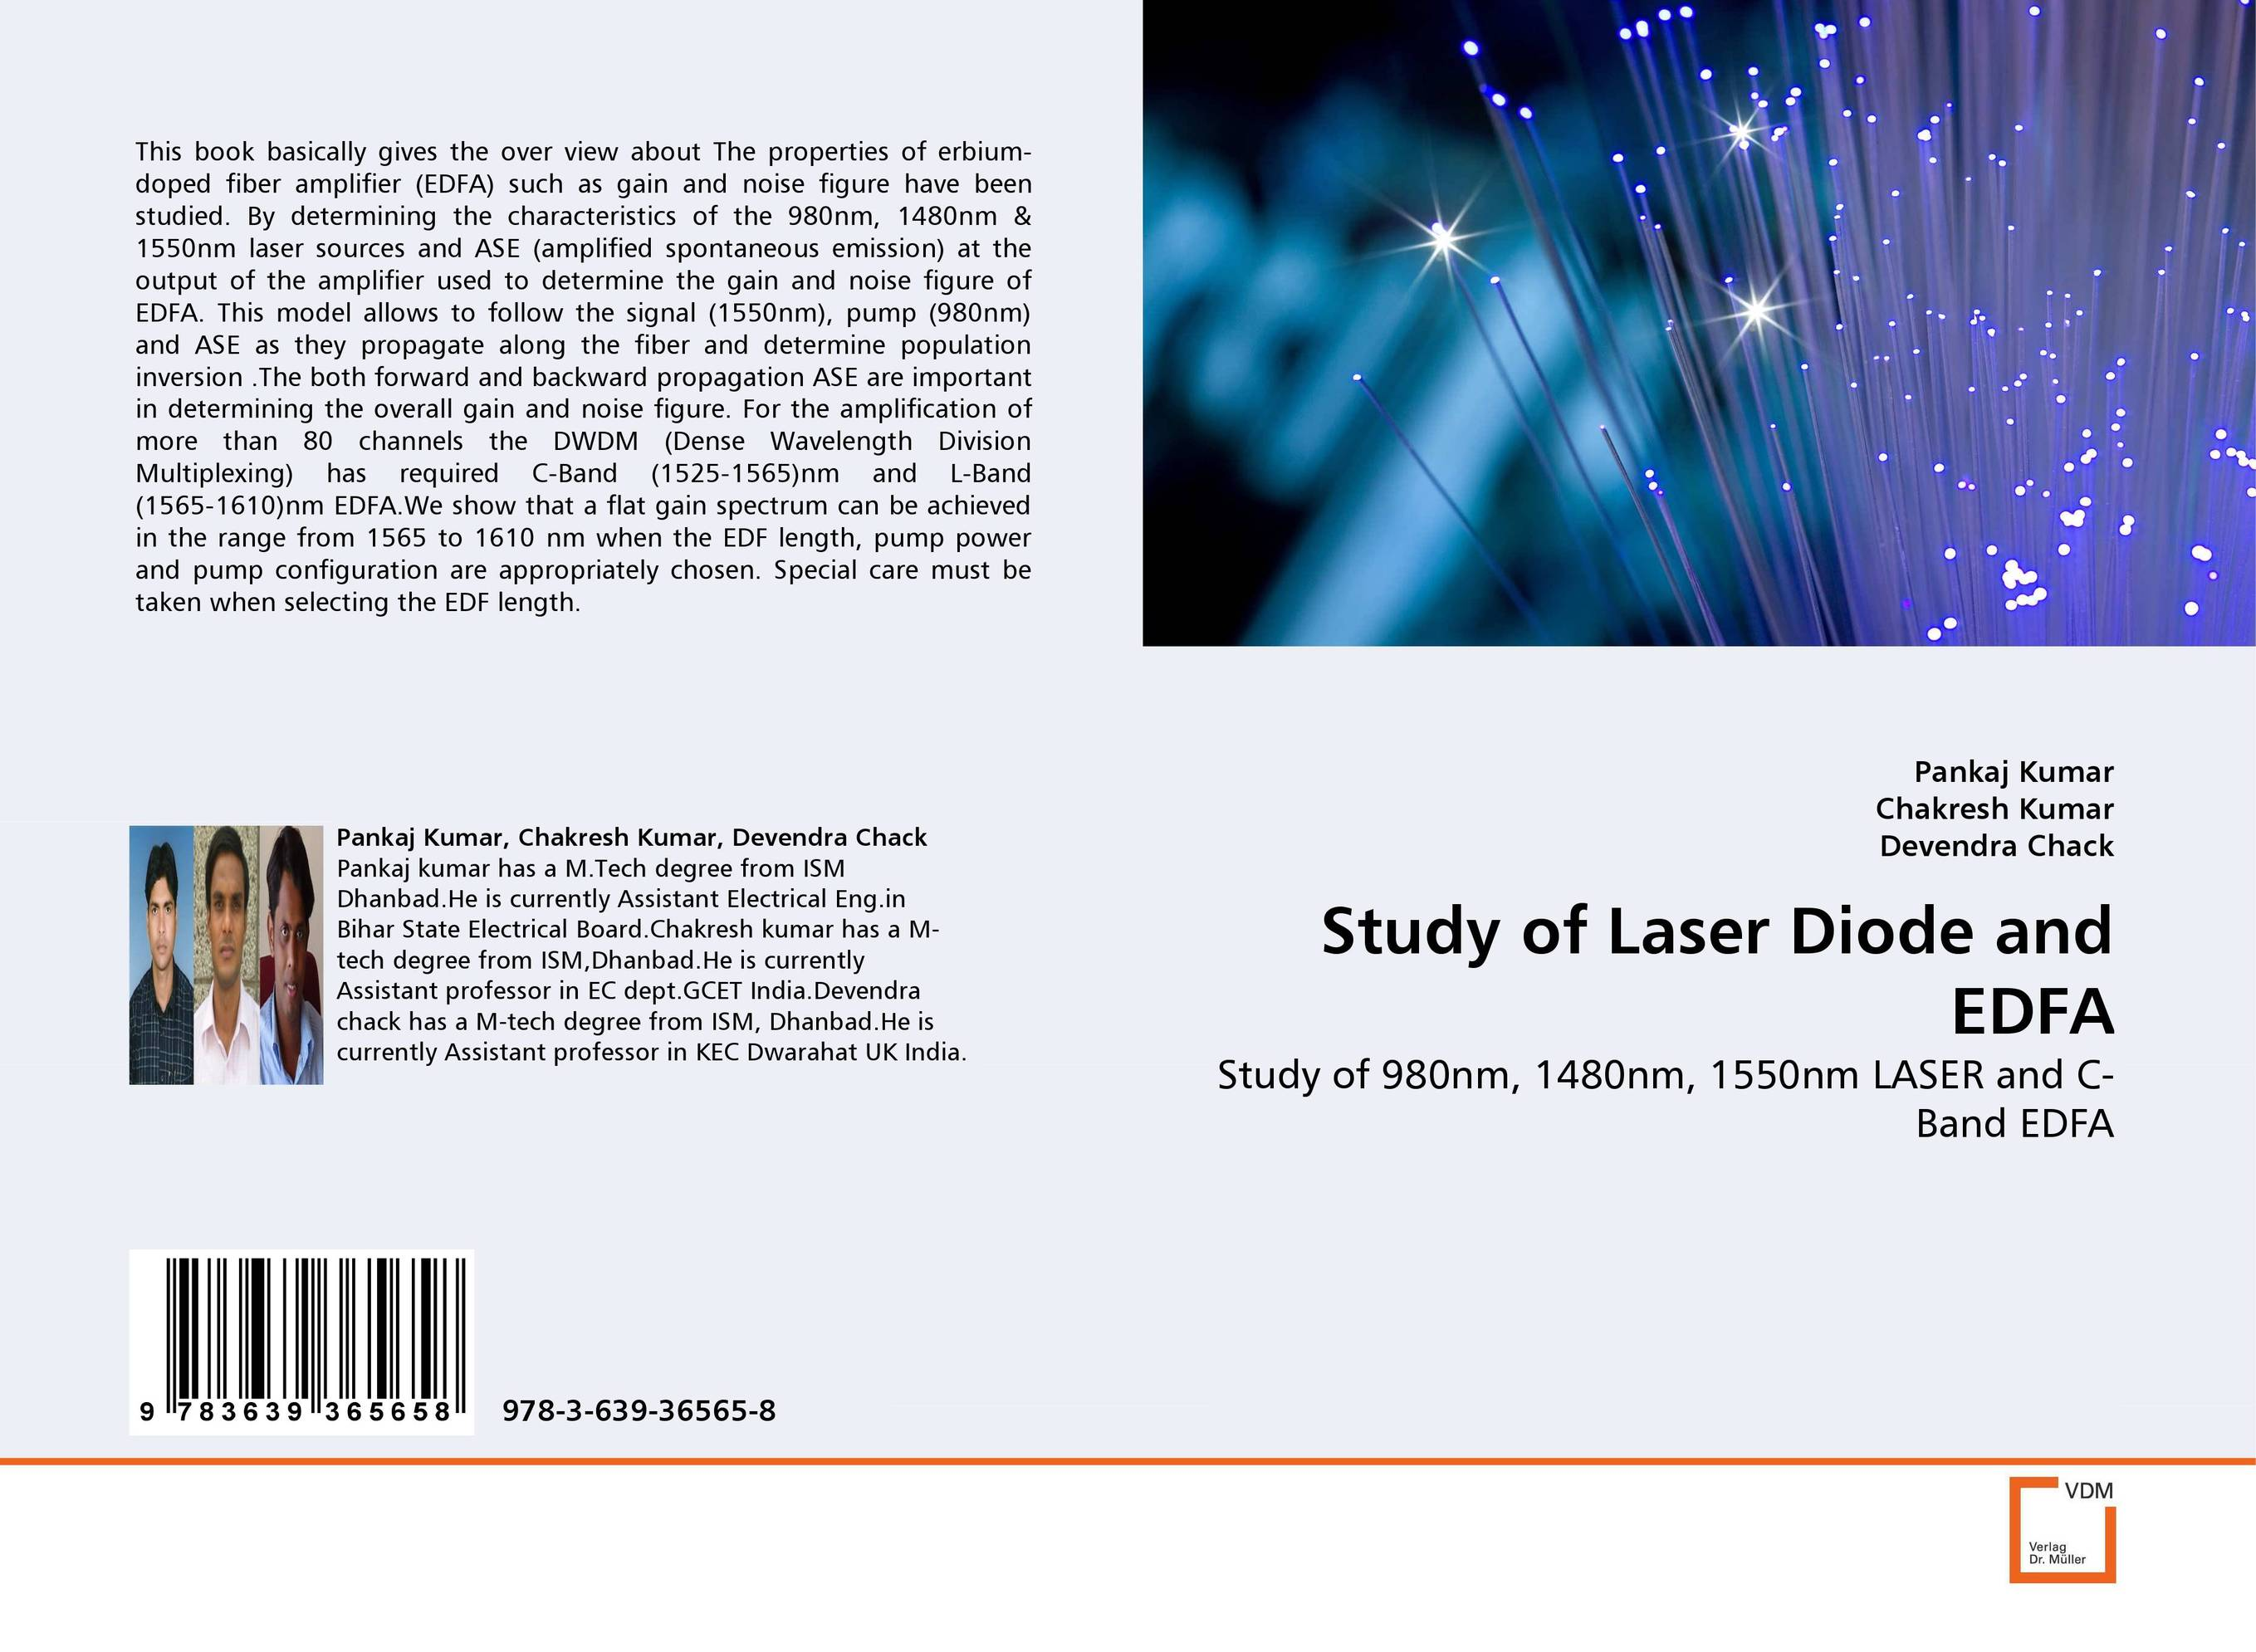 Study of Laser Diode and EDFA